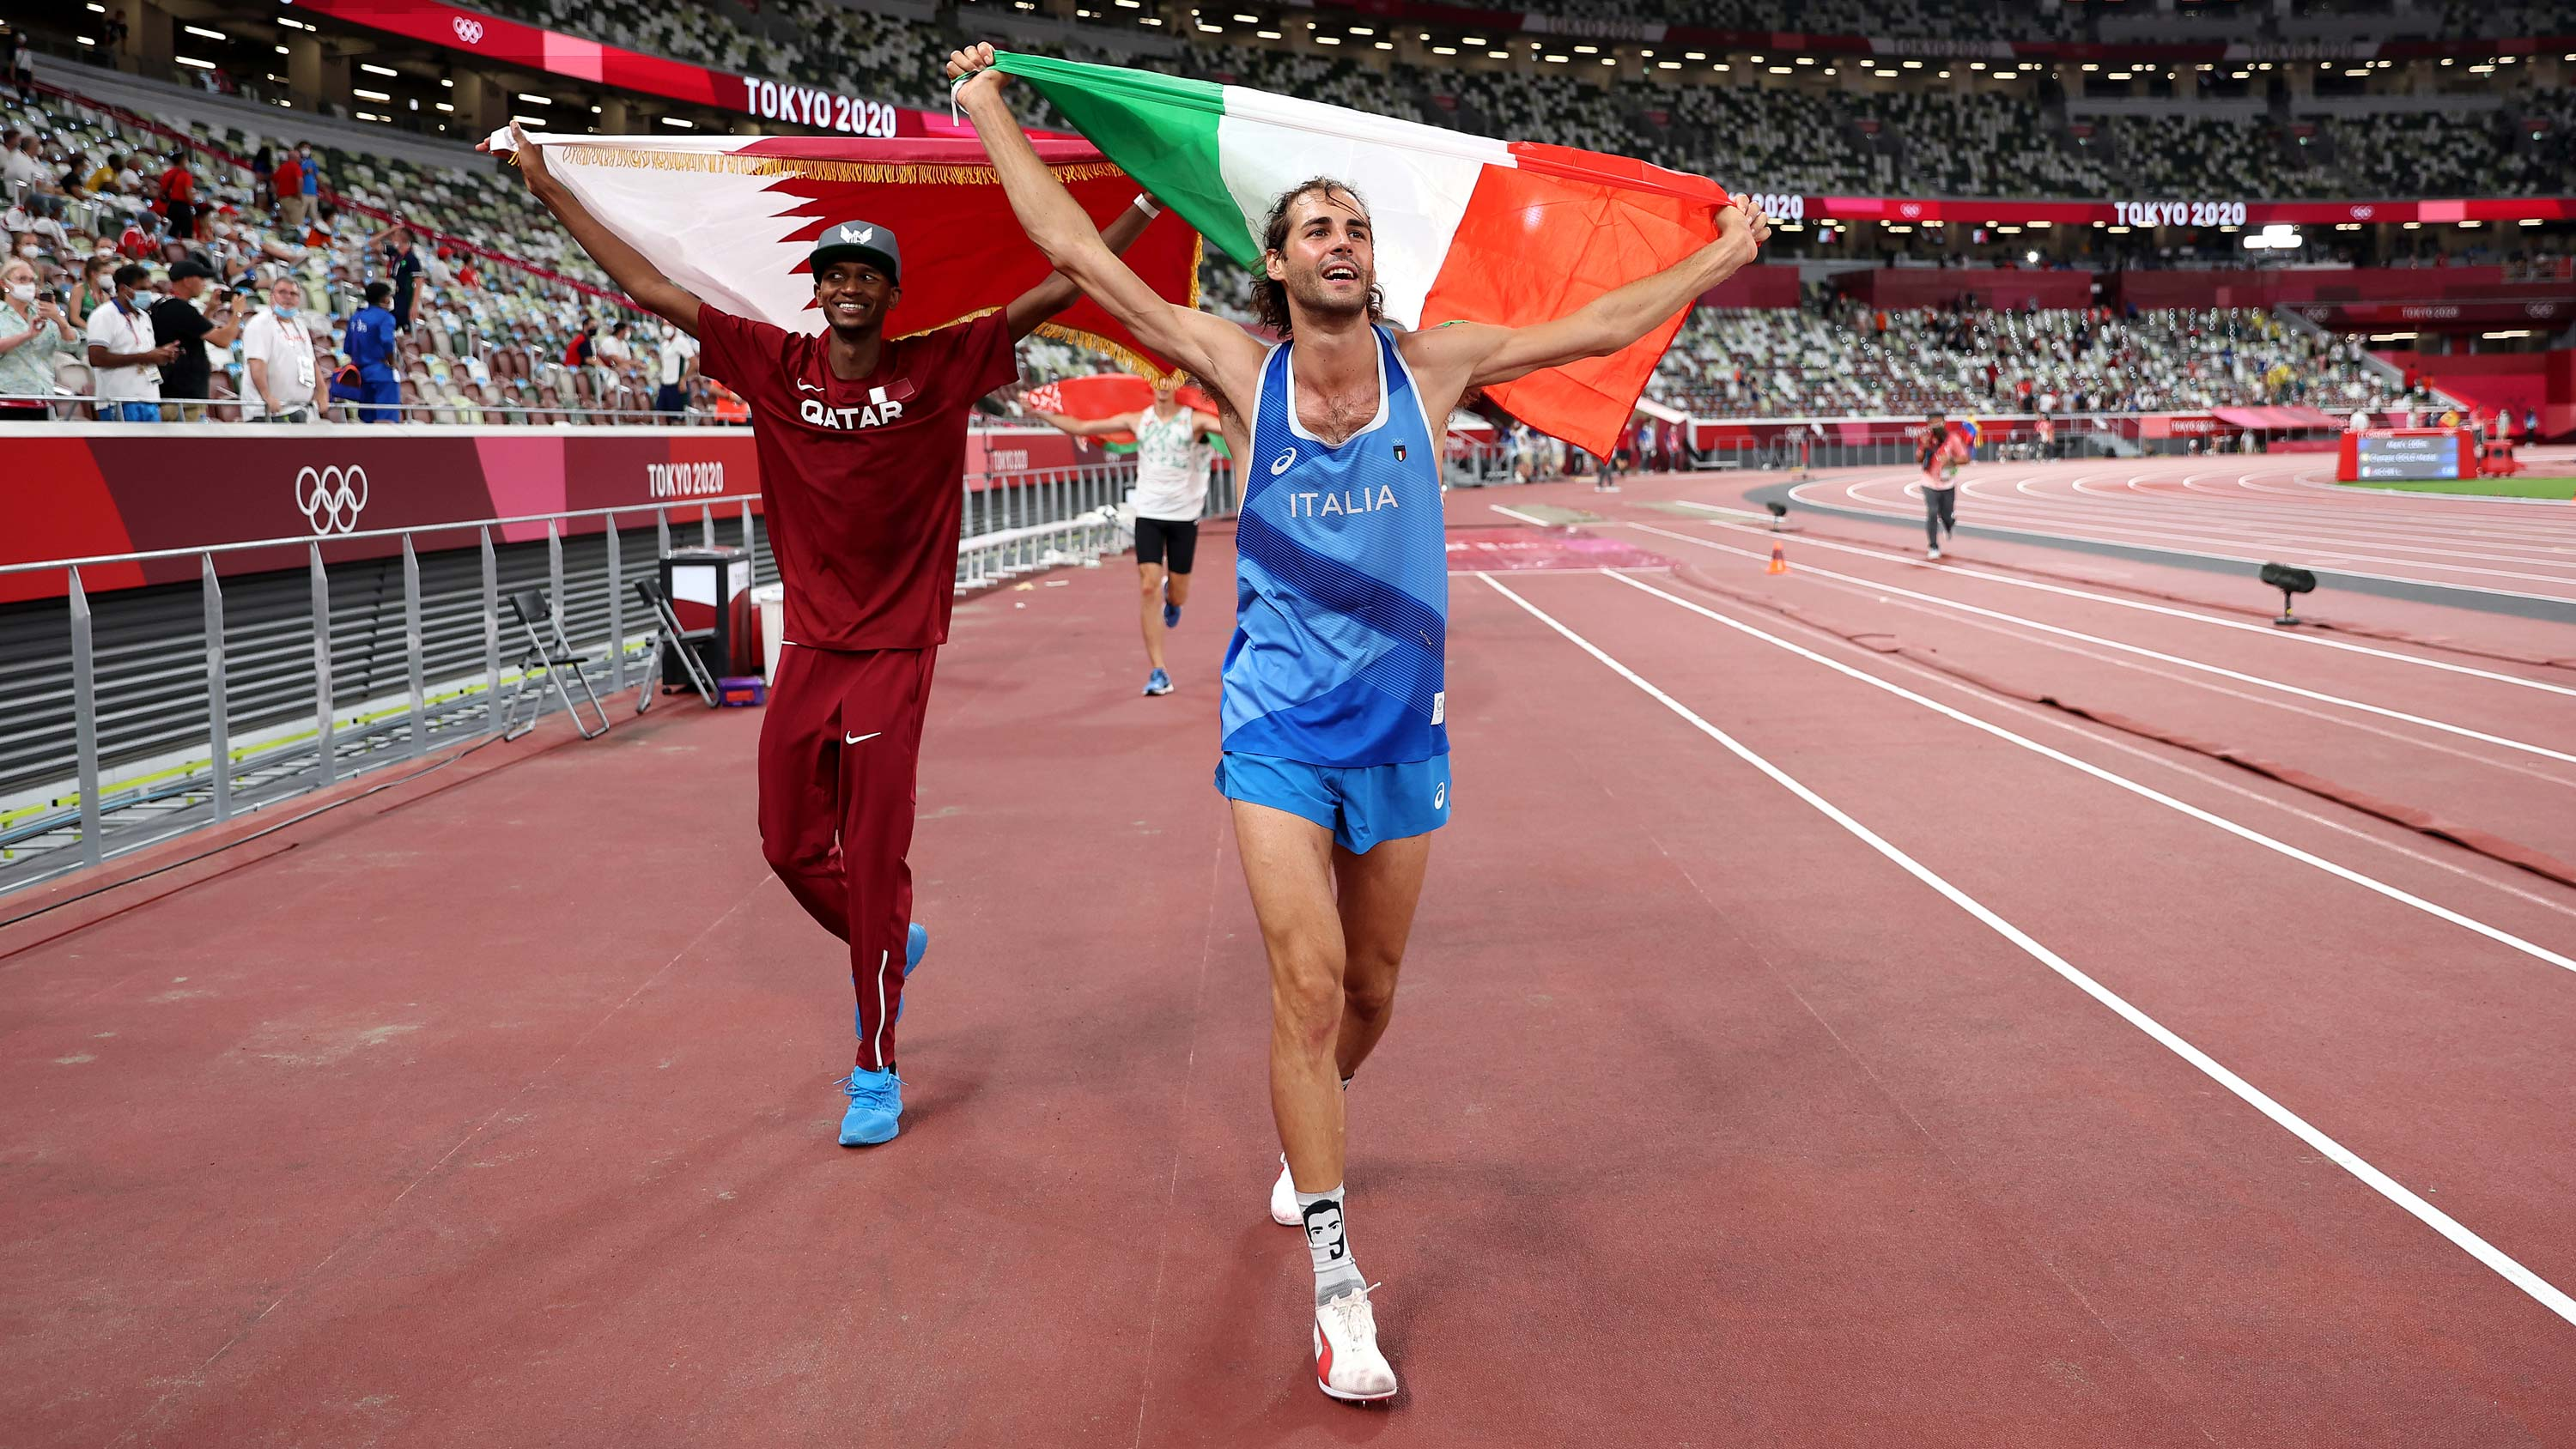 Joint gold medalists Mutaz Essa Barshim of Qatar and Gianmarco Tamberi of Italy celebrate on the track following the high jump final at the Olympic Stadium on August 1.